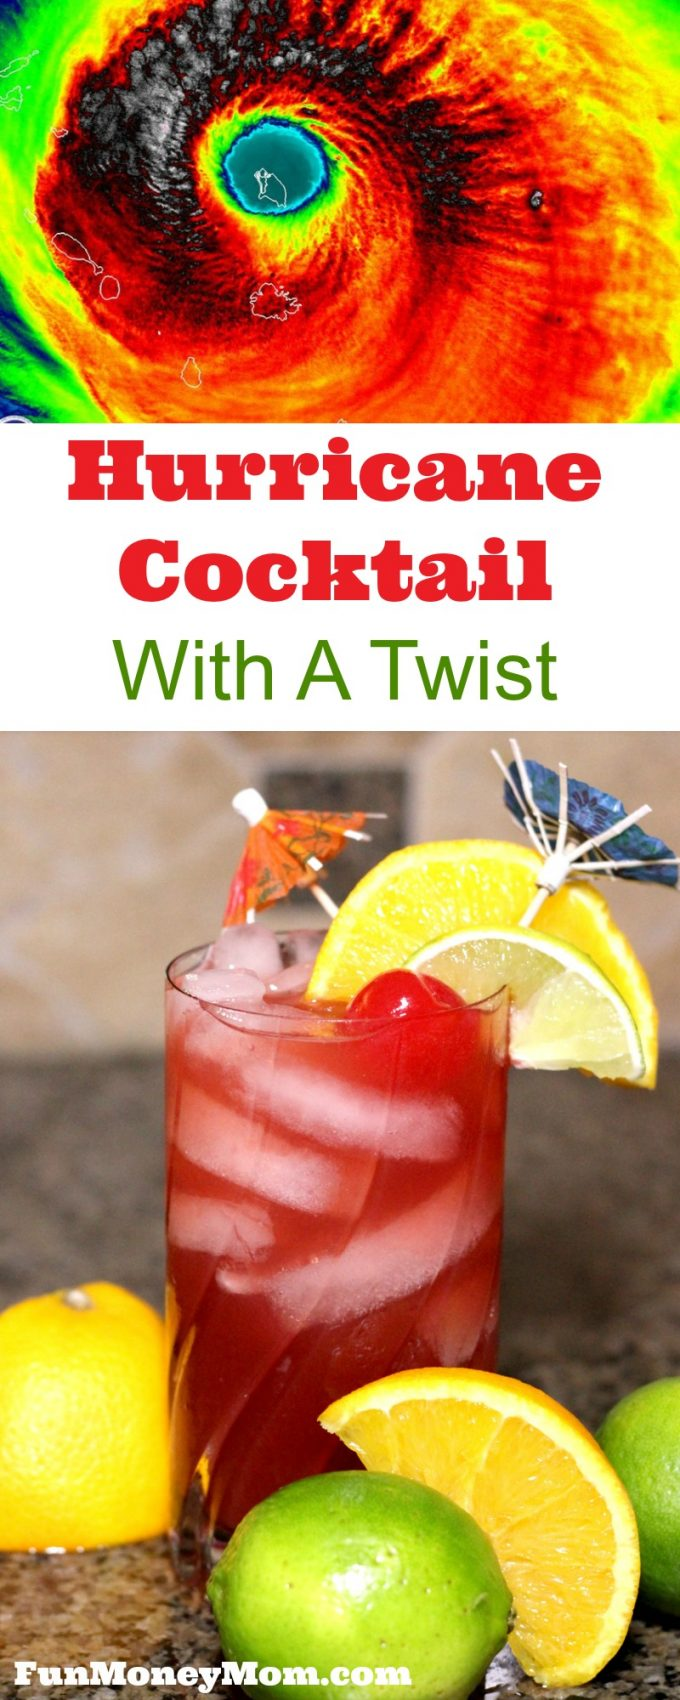 What do you do when the biggest hurricane in the history of hurricanes is heading straight towards your house and husband? You make Hurricane cocktails, of course!